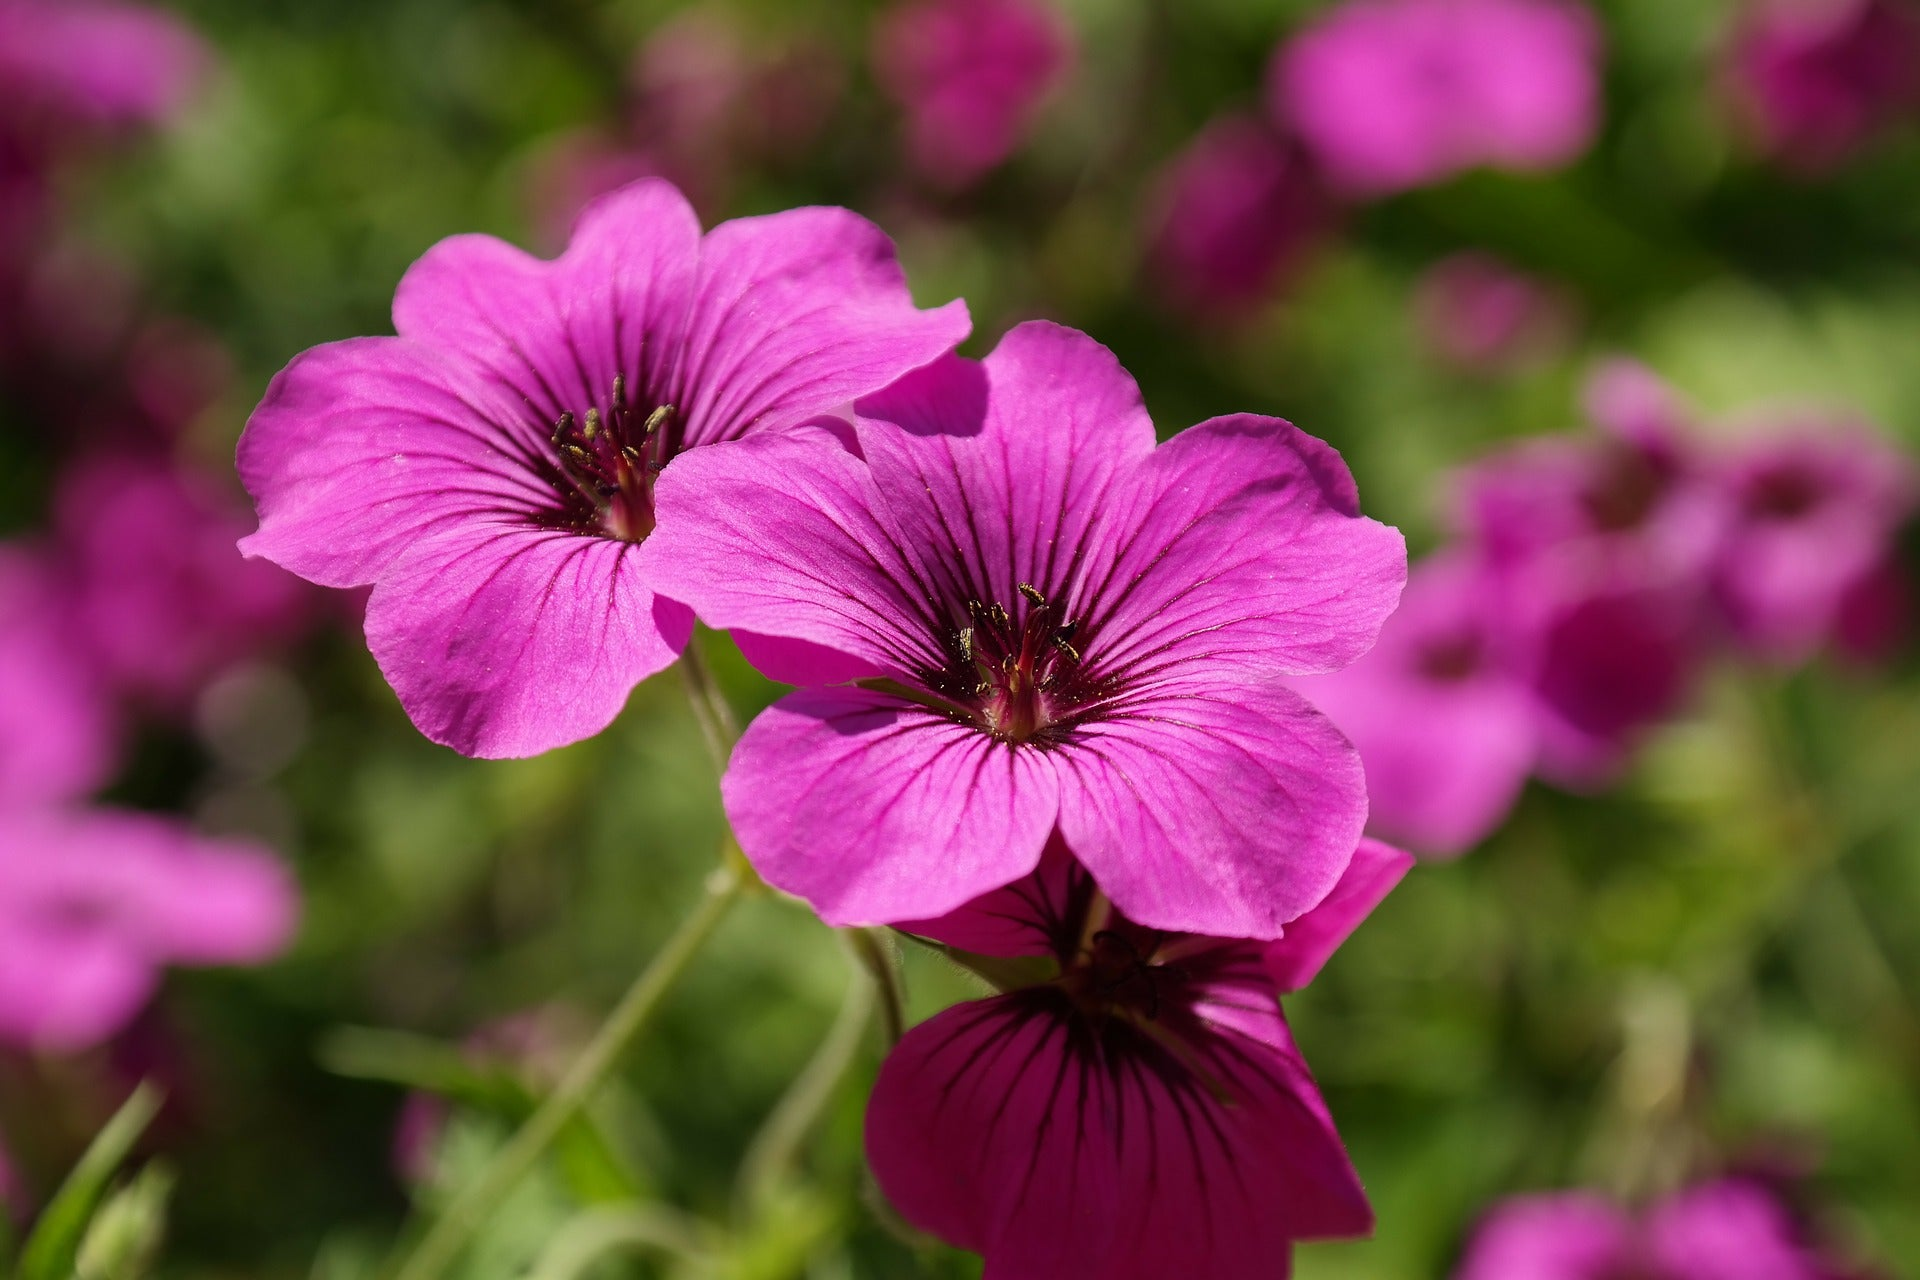 Geranium essential oil has a sweet floral fragrance